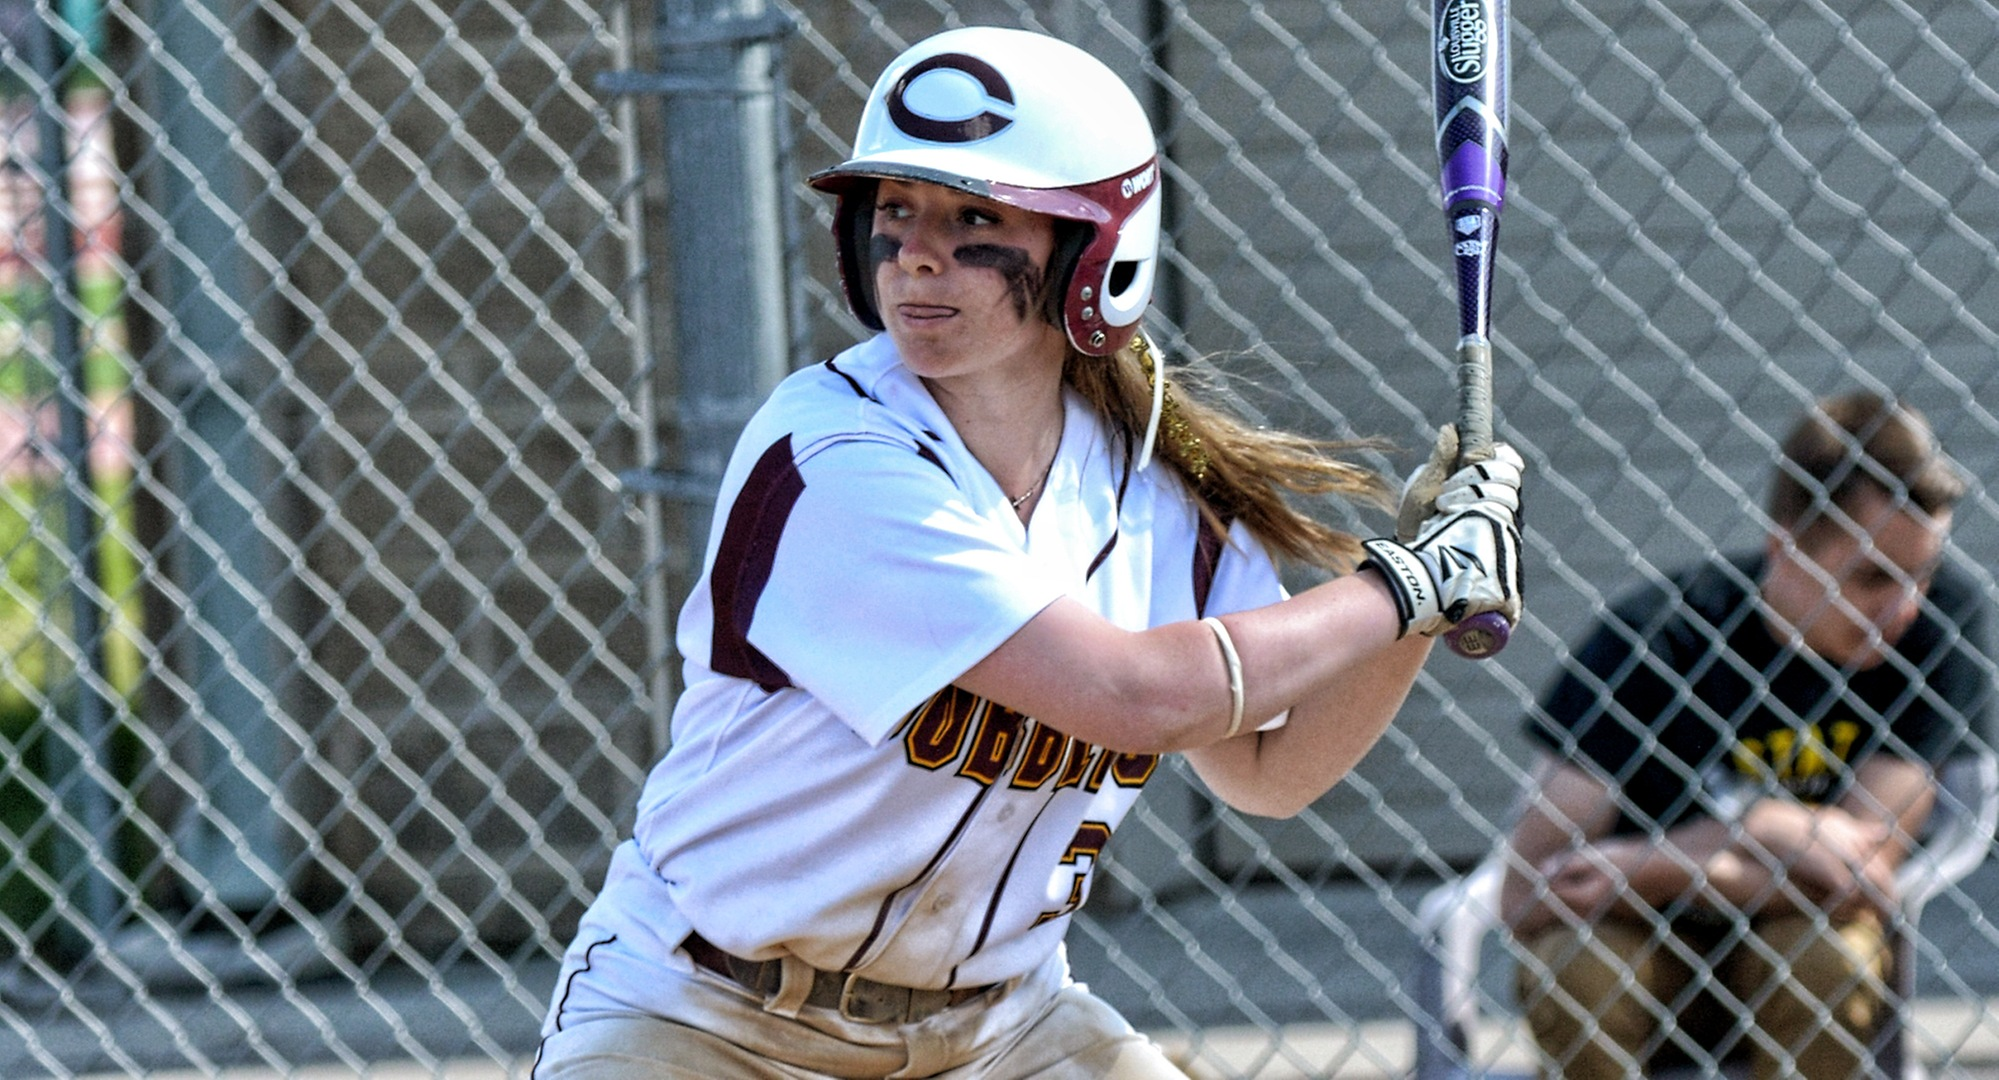 Senior Kayla Nack went 2-for-3 in the second game vs. Bethel. She was 4-for-12 in the four games over the weekend.